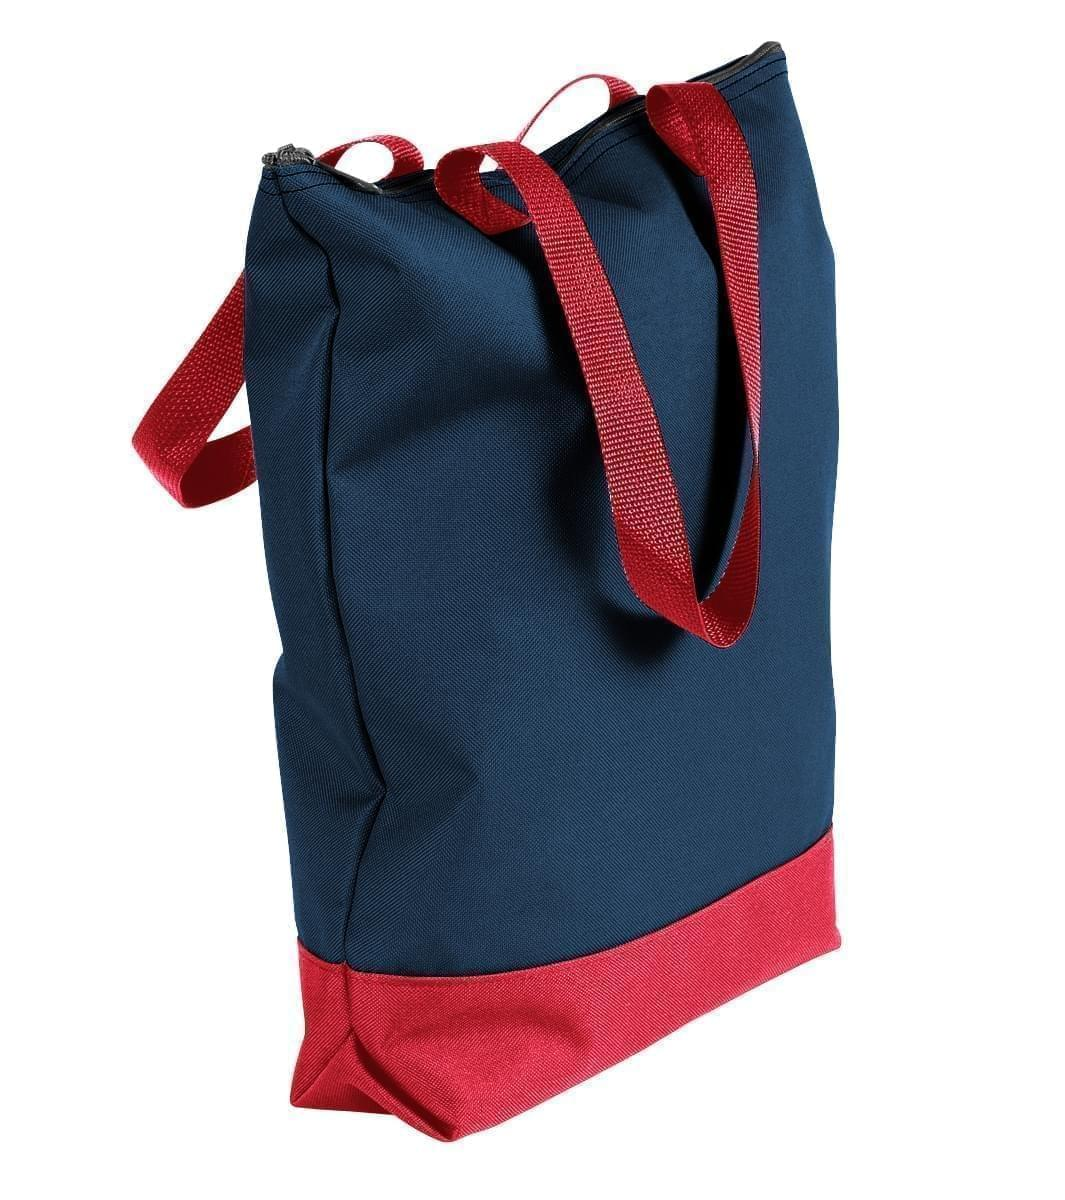 USA Made Canvas Portfolio Tote Bags, Navy-Red, 1AAMX1UAC2